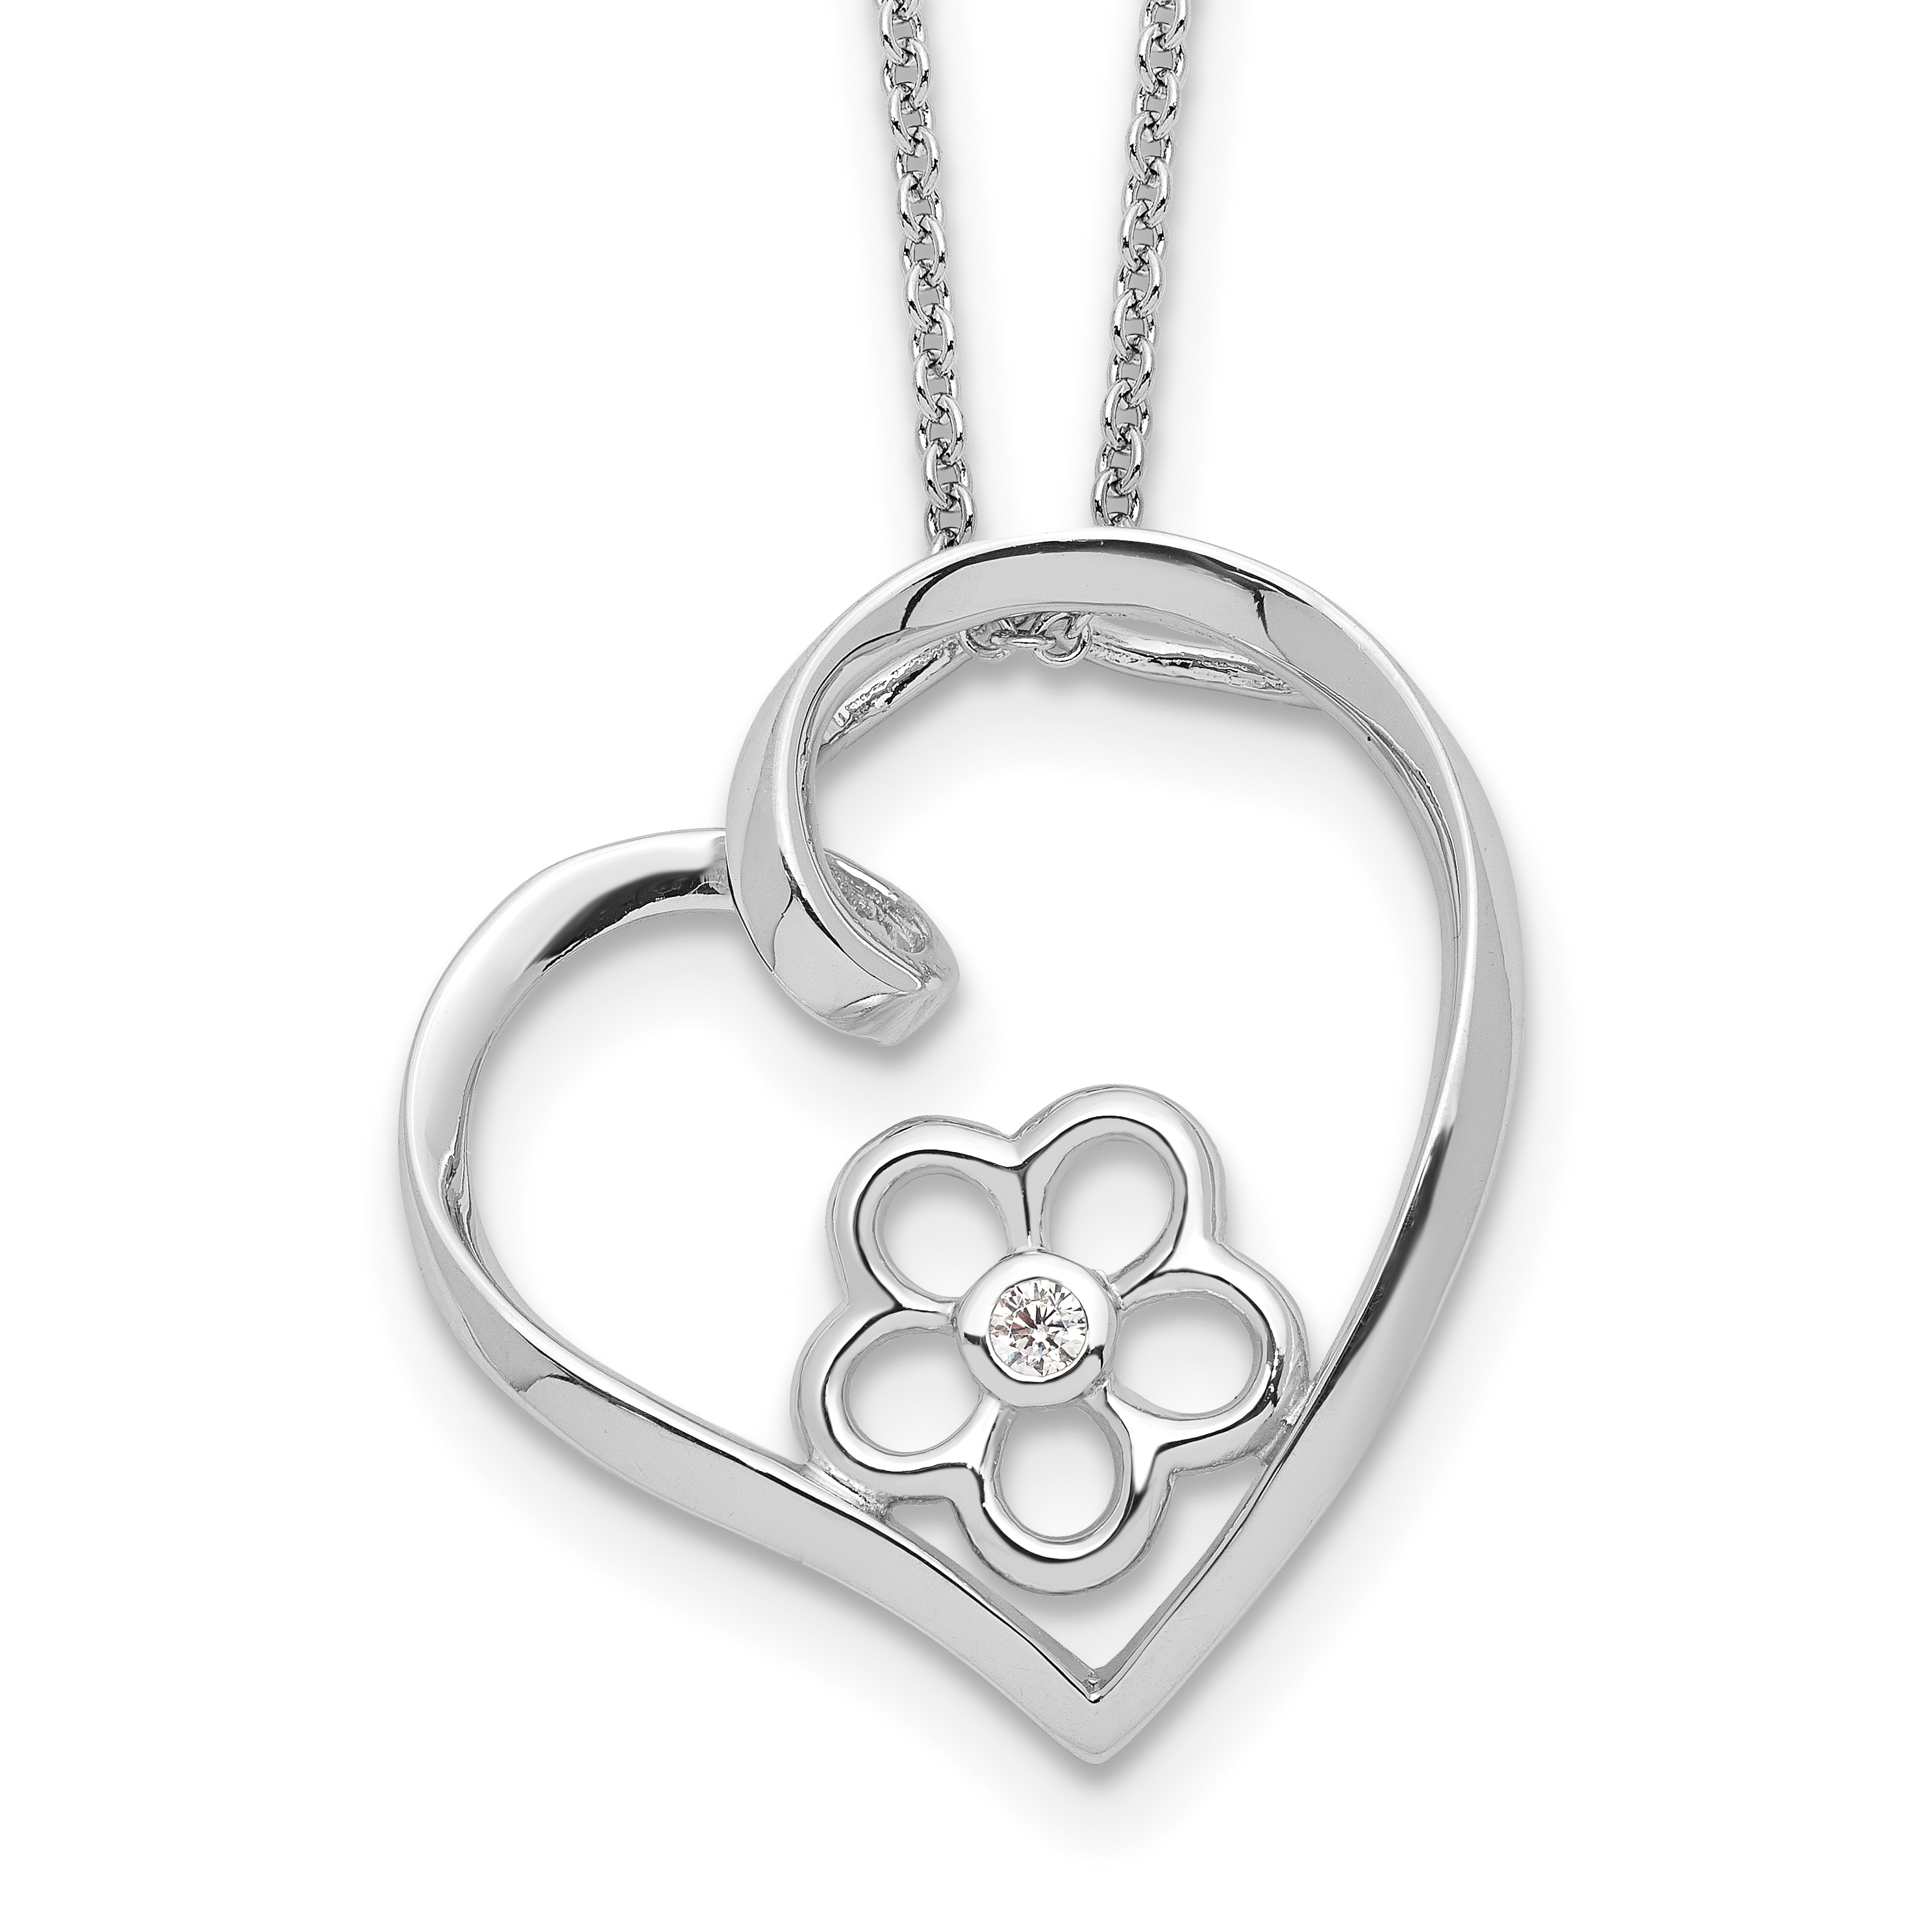 925 Sterling Silver Cubic Zirconia Cz Heart Chain Necklace Pendant Charm S//love Fine Jewelry Gifts For Women For Her